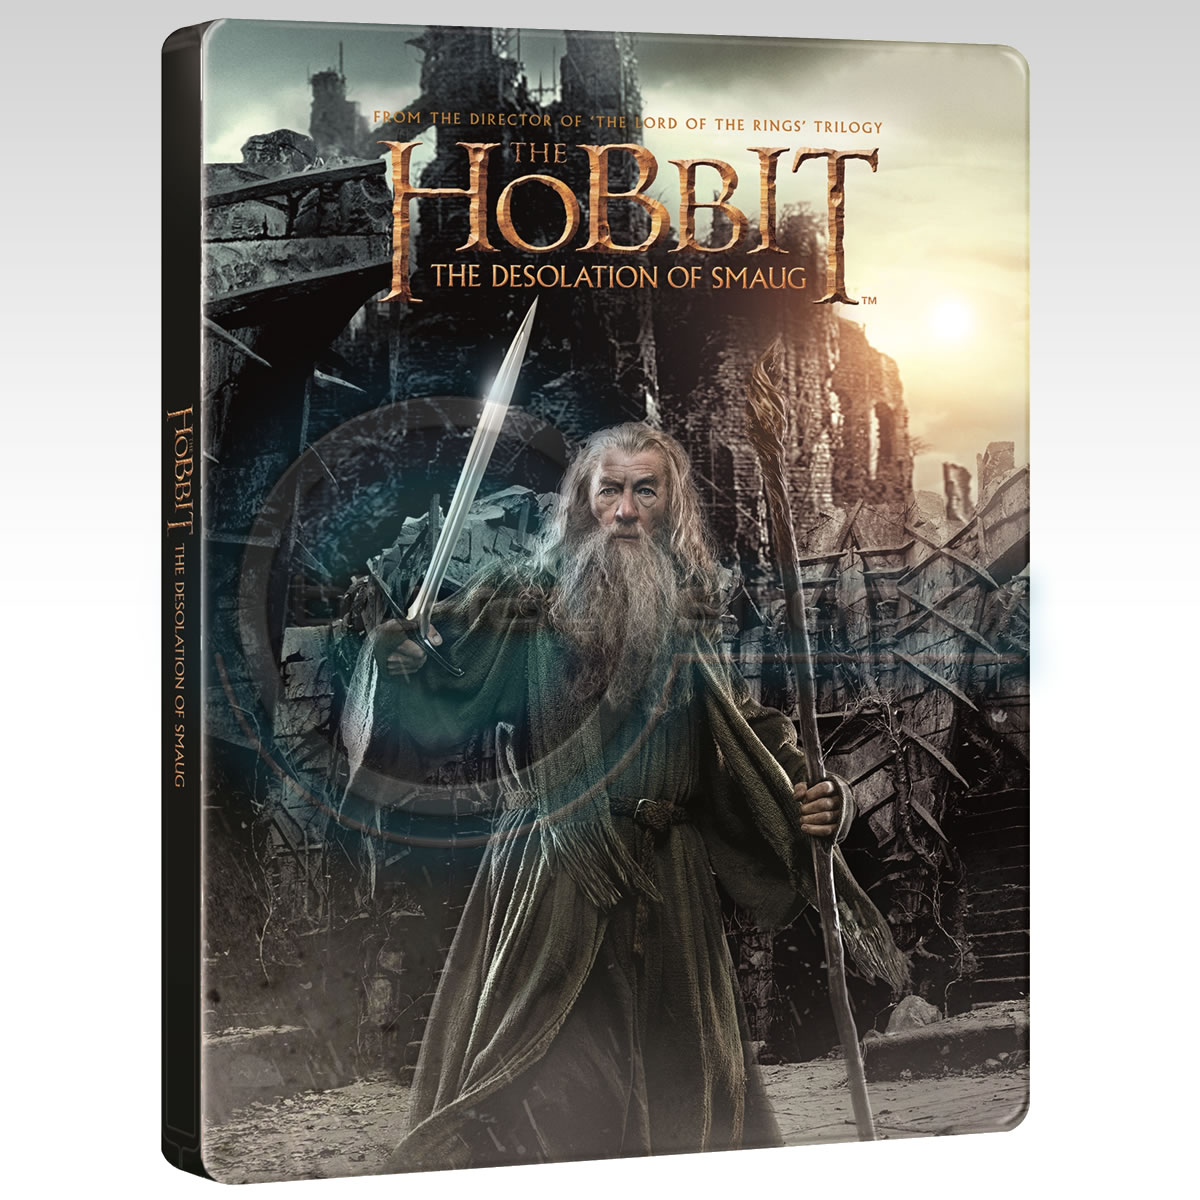 THE HOBBIT: THE DESOLATION OF SMAUG Limited Collector's Edition Steelbook [Imported] (2 BLU-RAY)